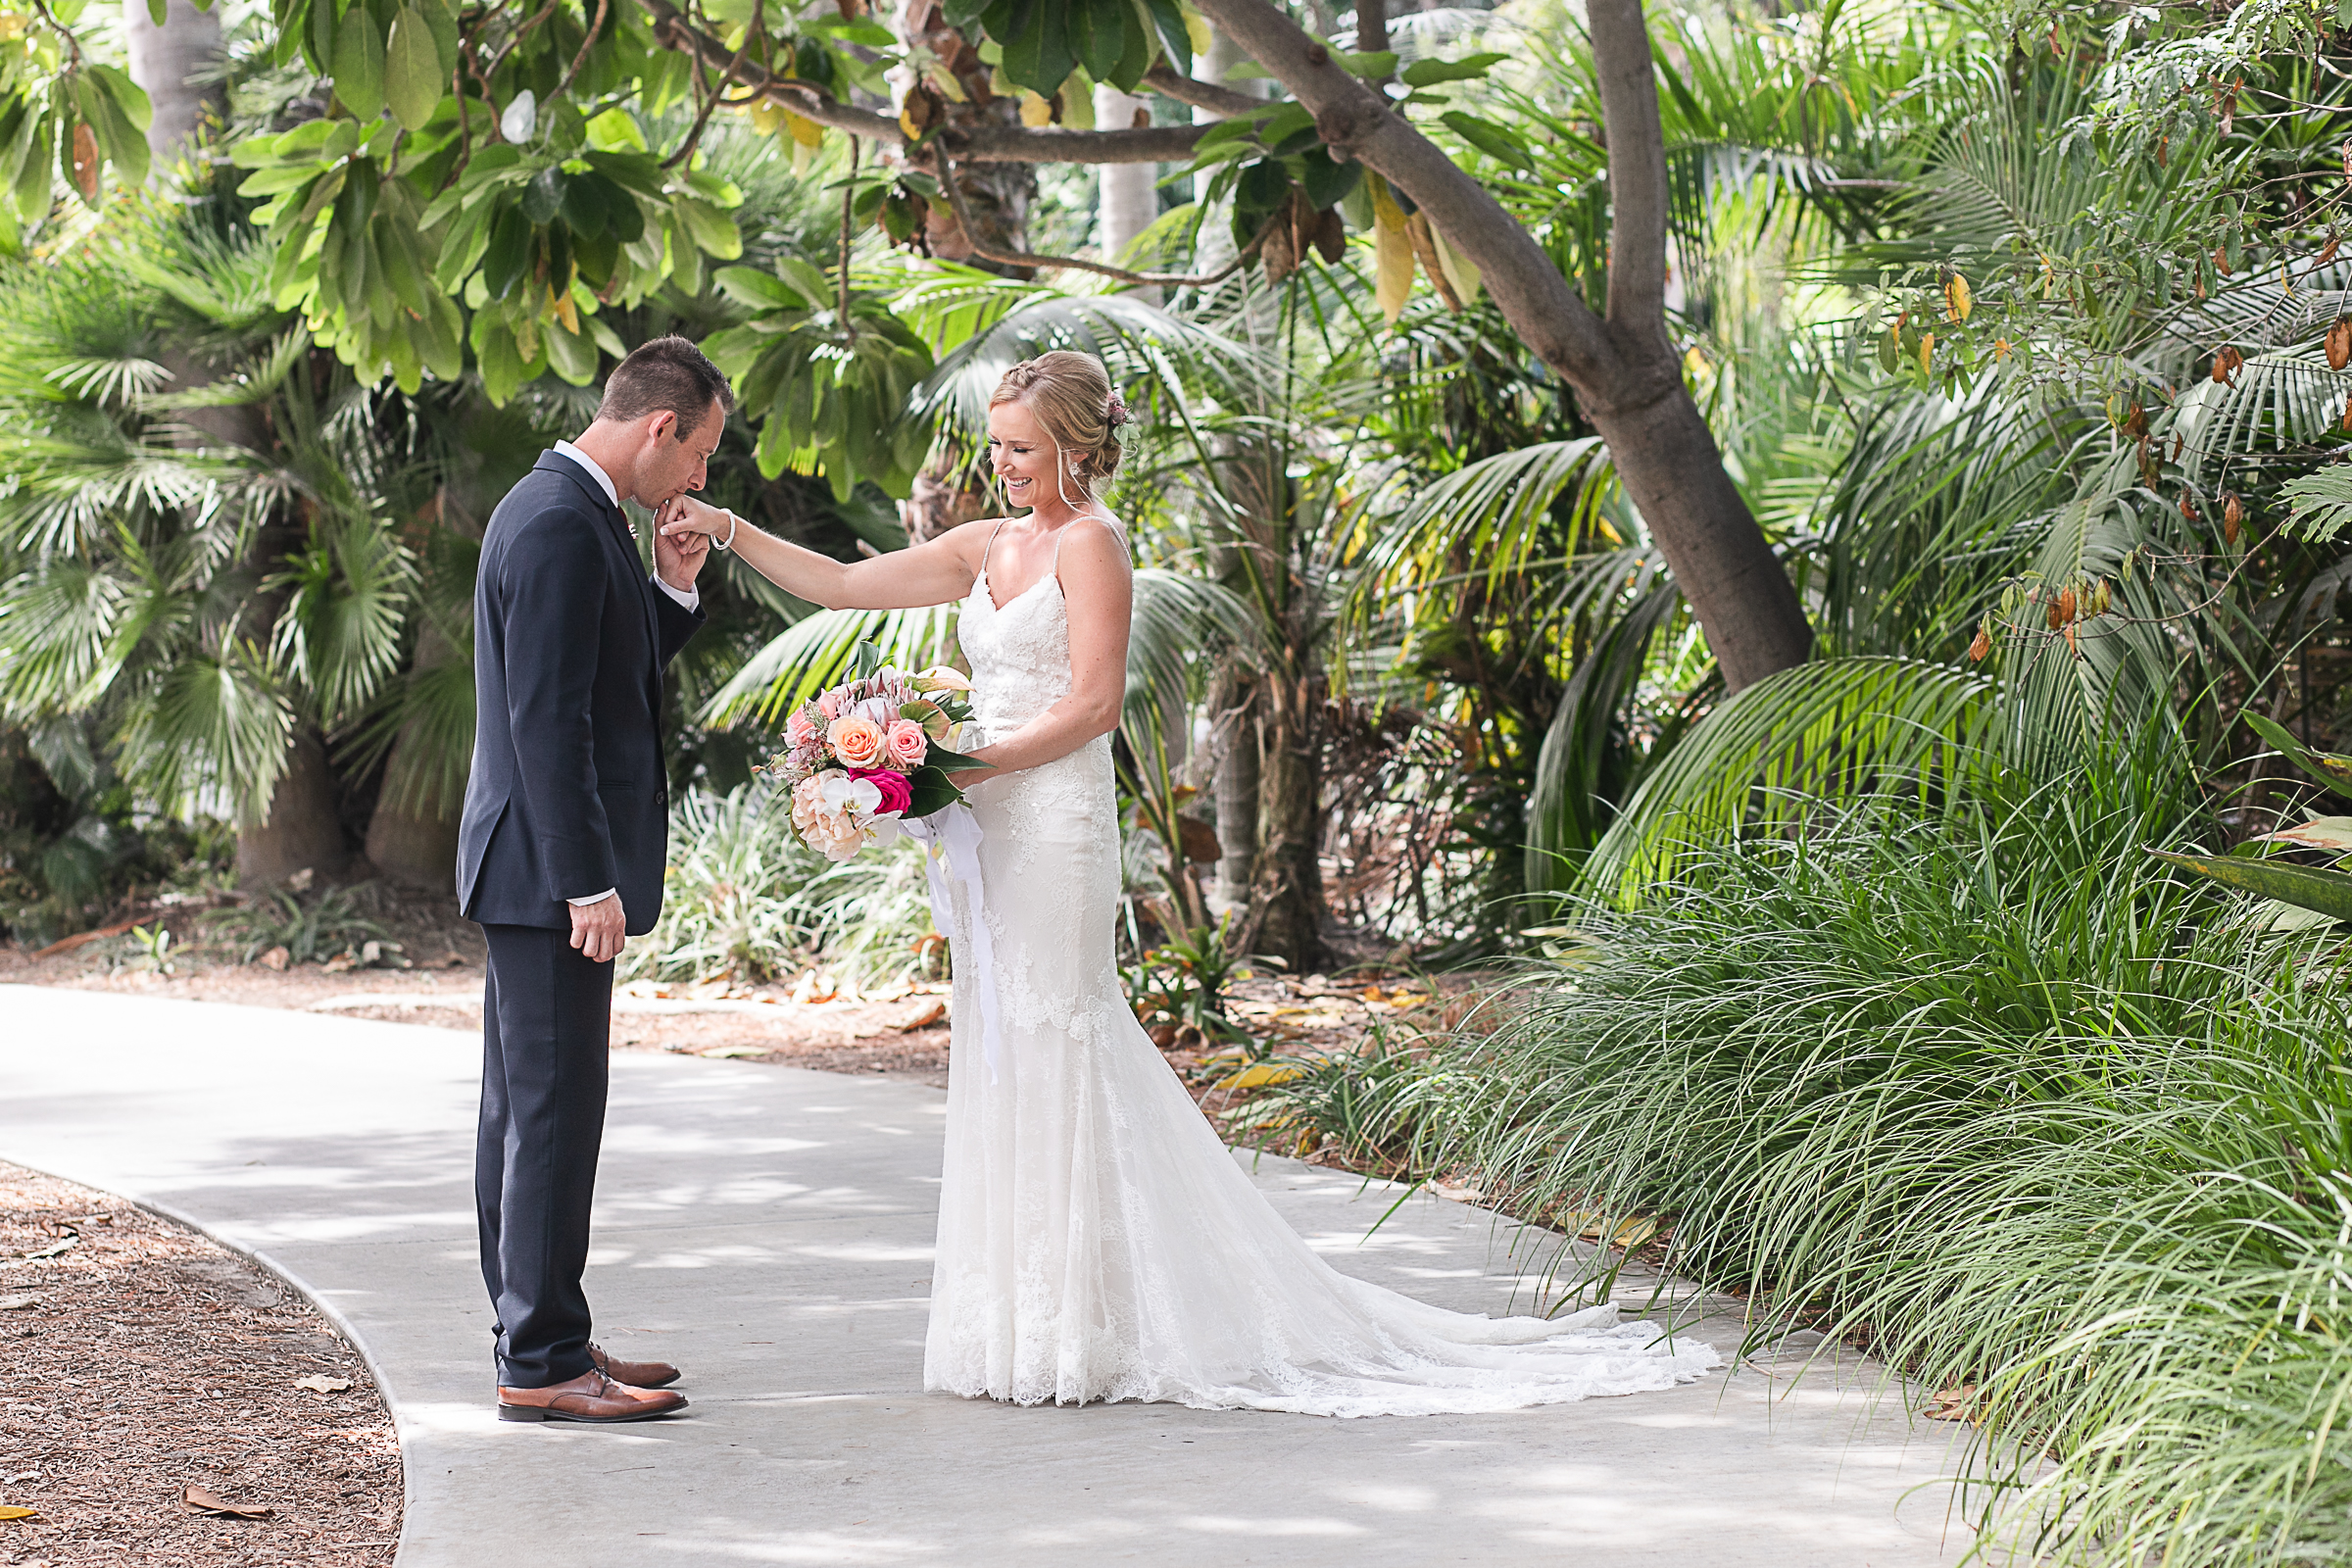 Heather and Chad's Wedding at Coronado community Center and Paradise Point-20.jpg